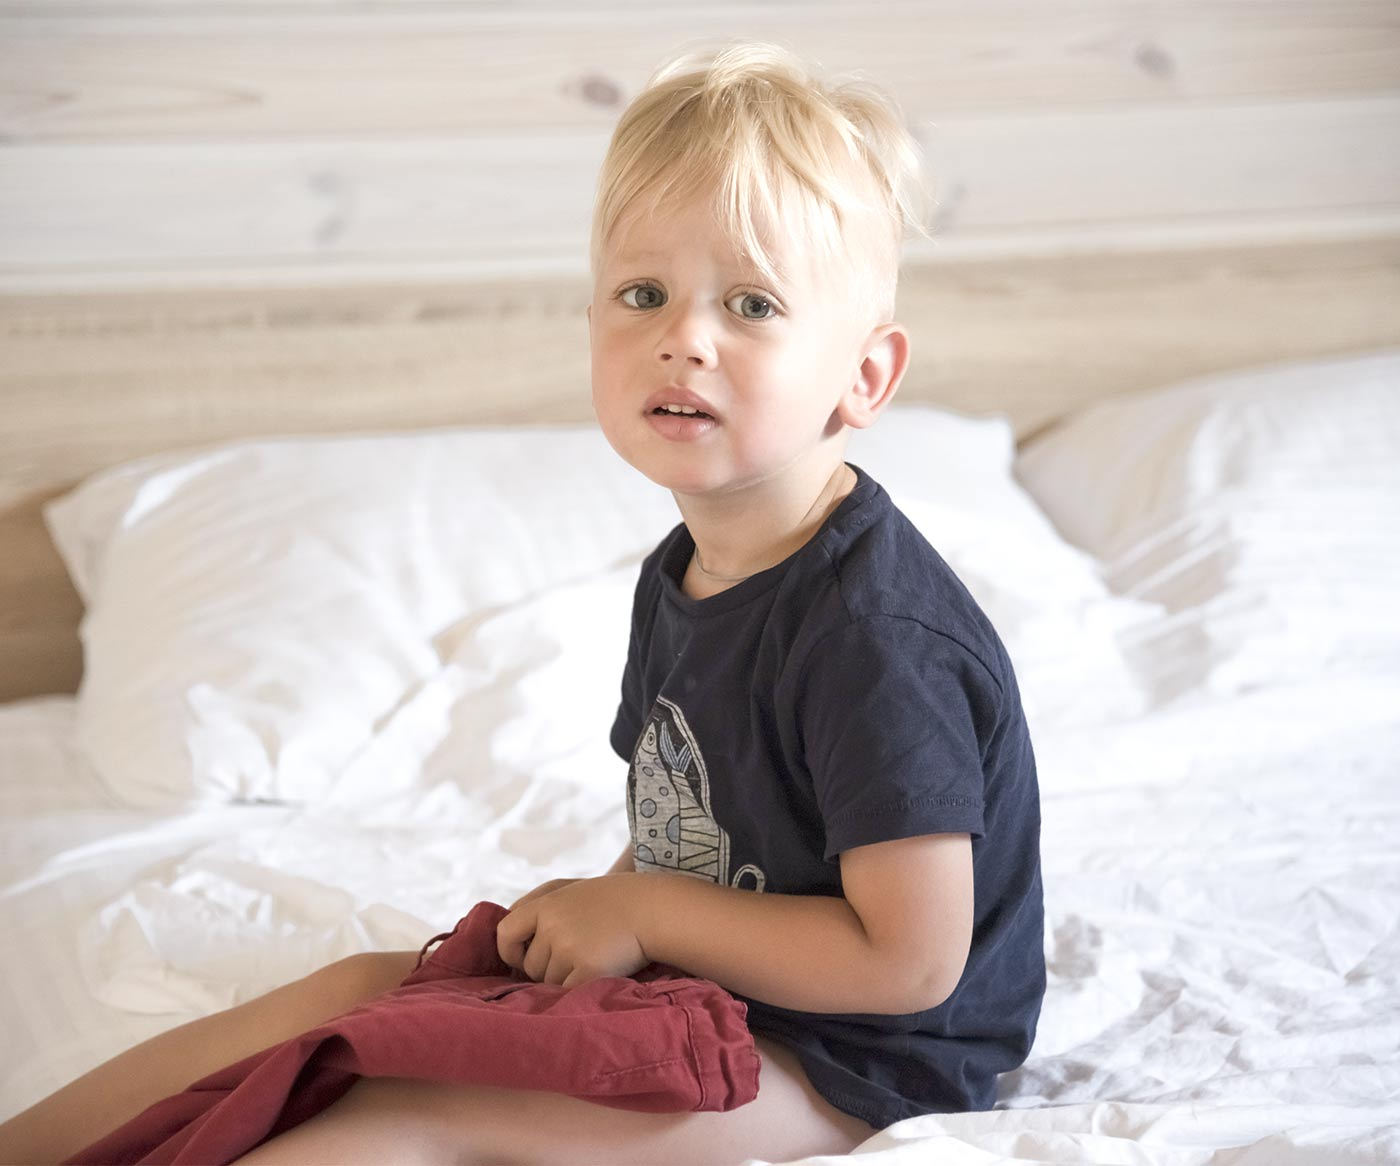 Little boy sitting in bed